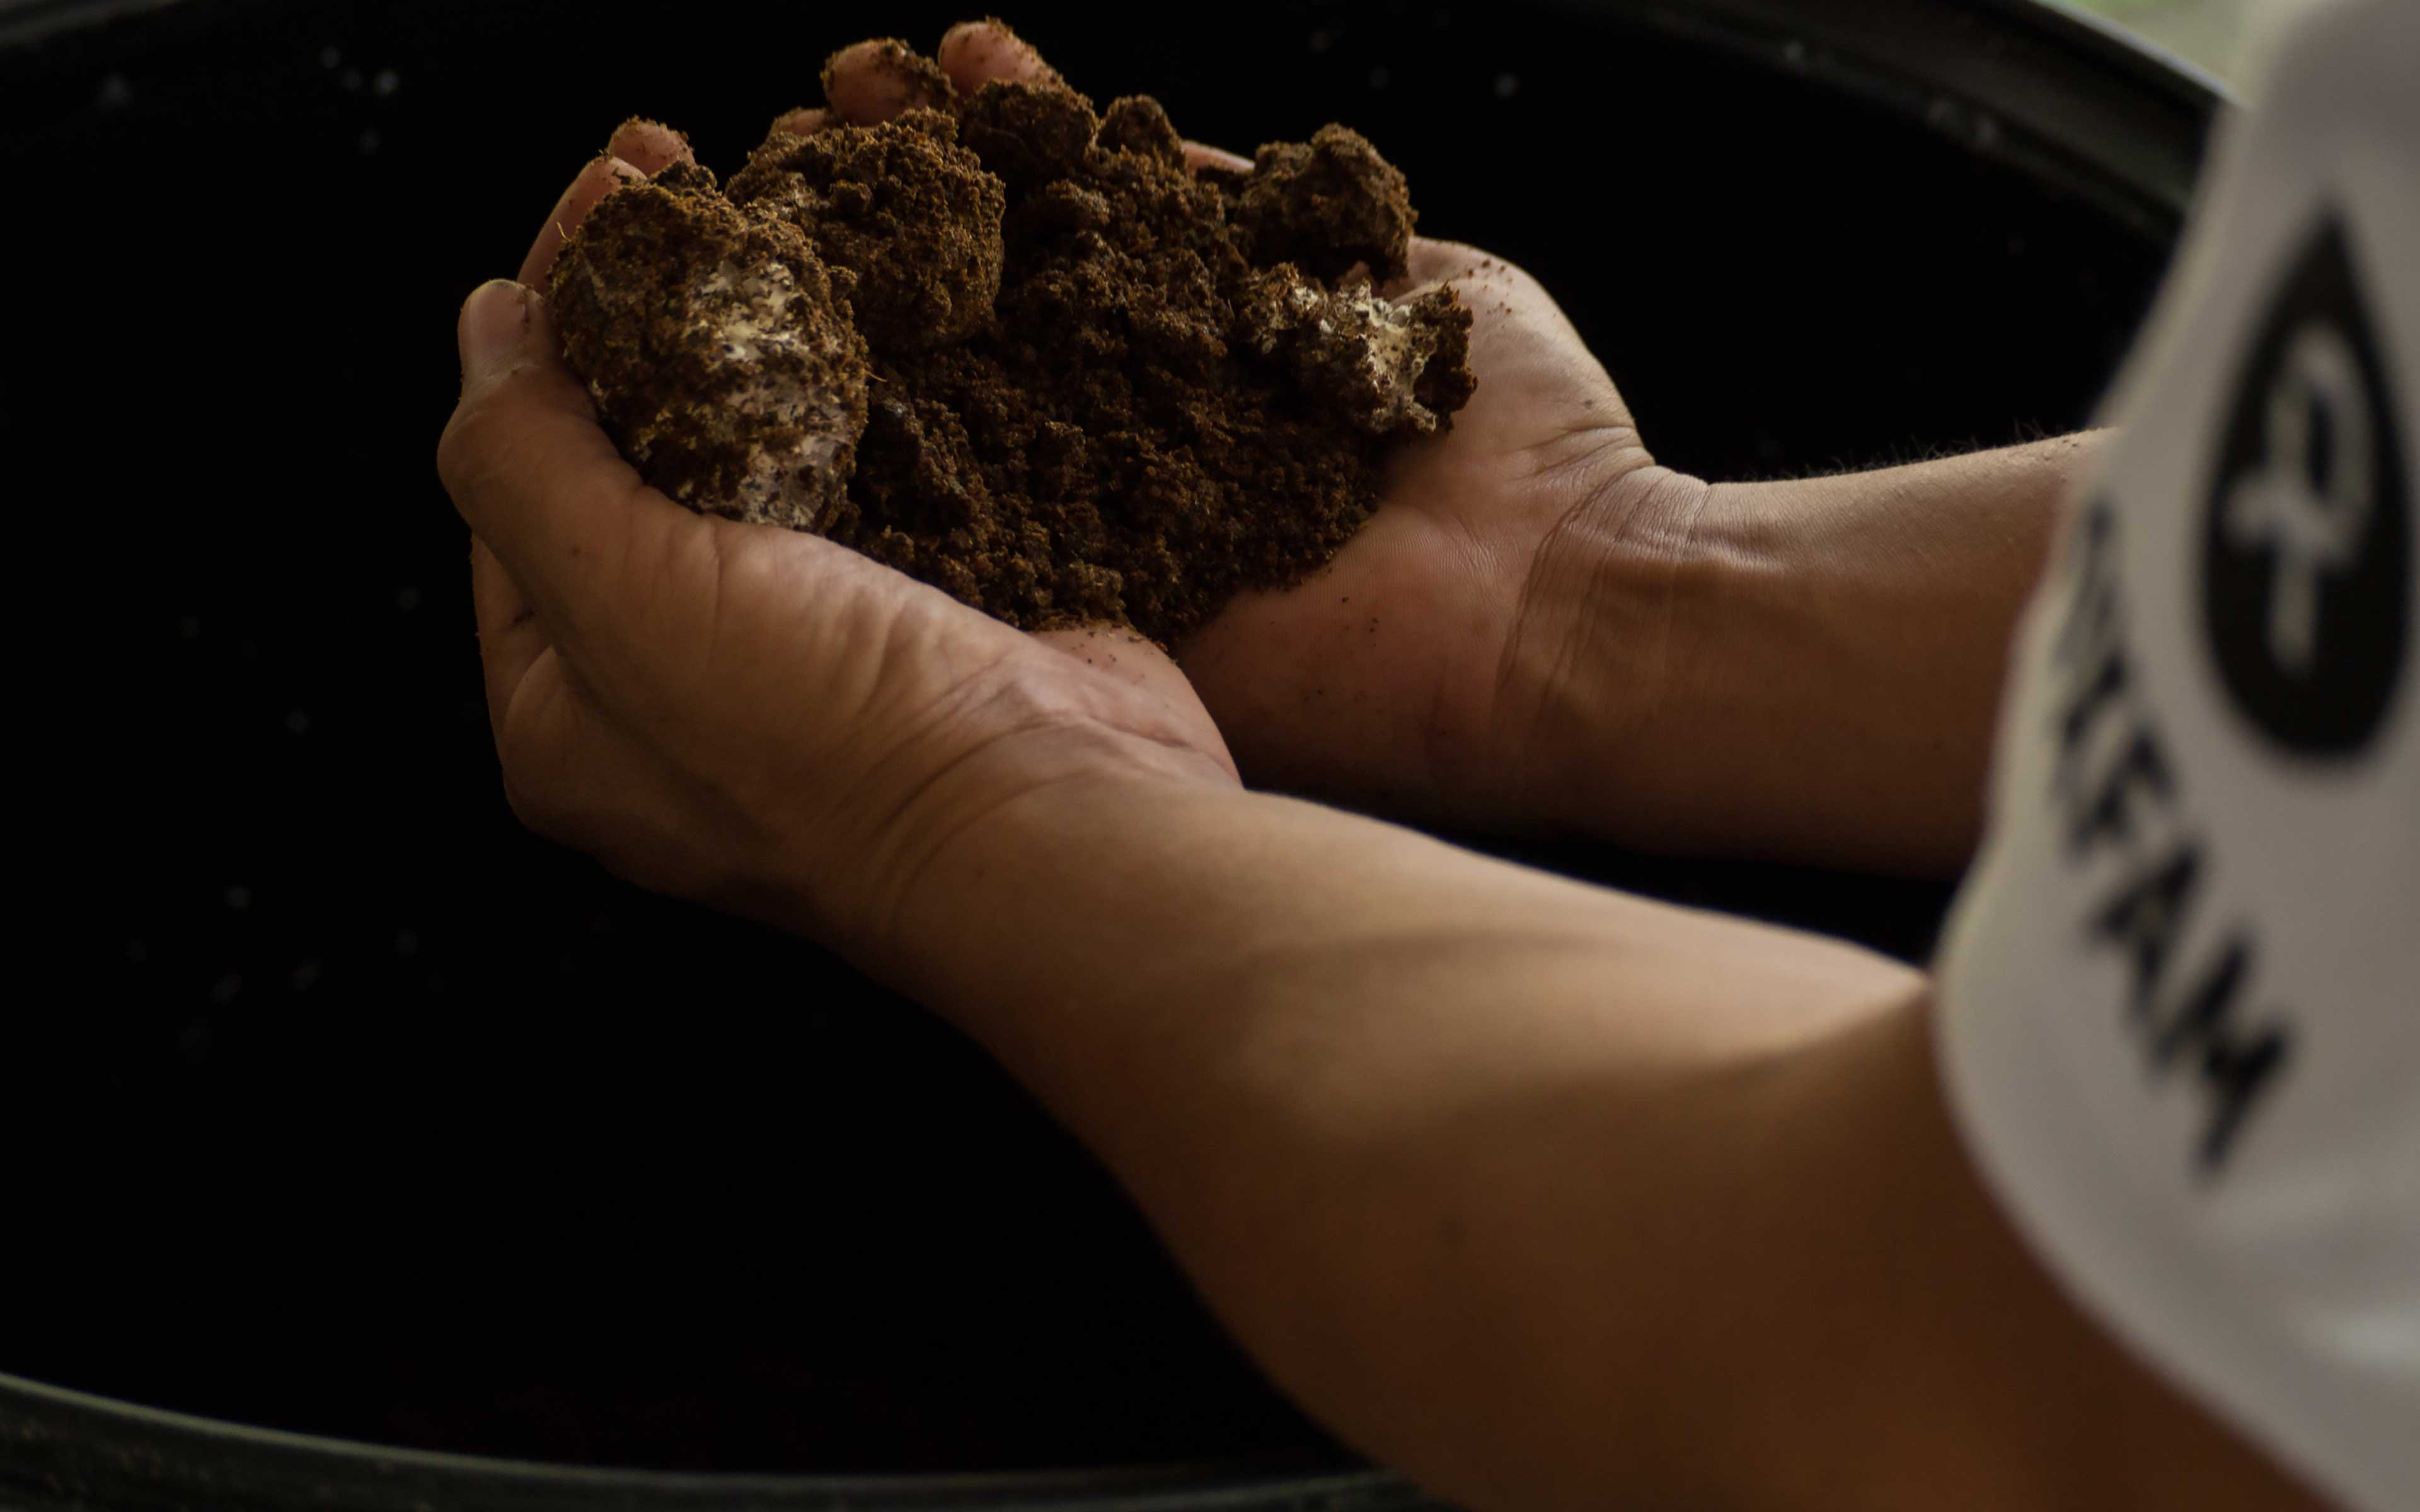 Using a fermentation method known as Bokashi, a group of farmers in El Ranchón, El Salvador, is now producing a powerful compost from local ingredients like cow dung, volcanic dust, rice flour, and microorganisms harvested from a fungus that grows in the mountains.